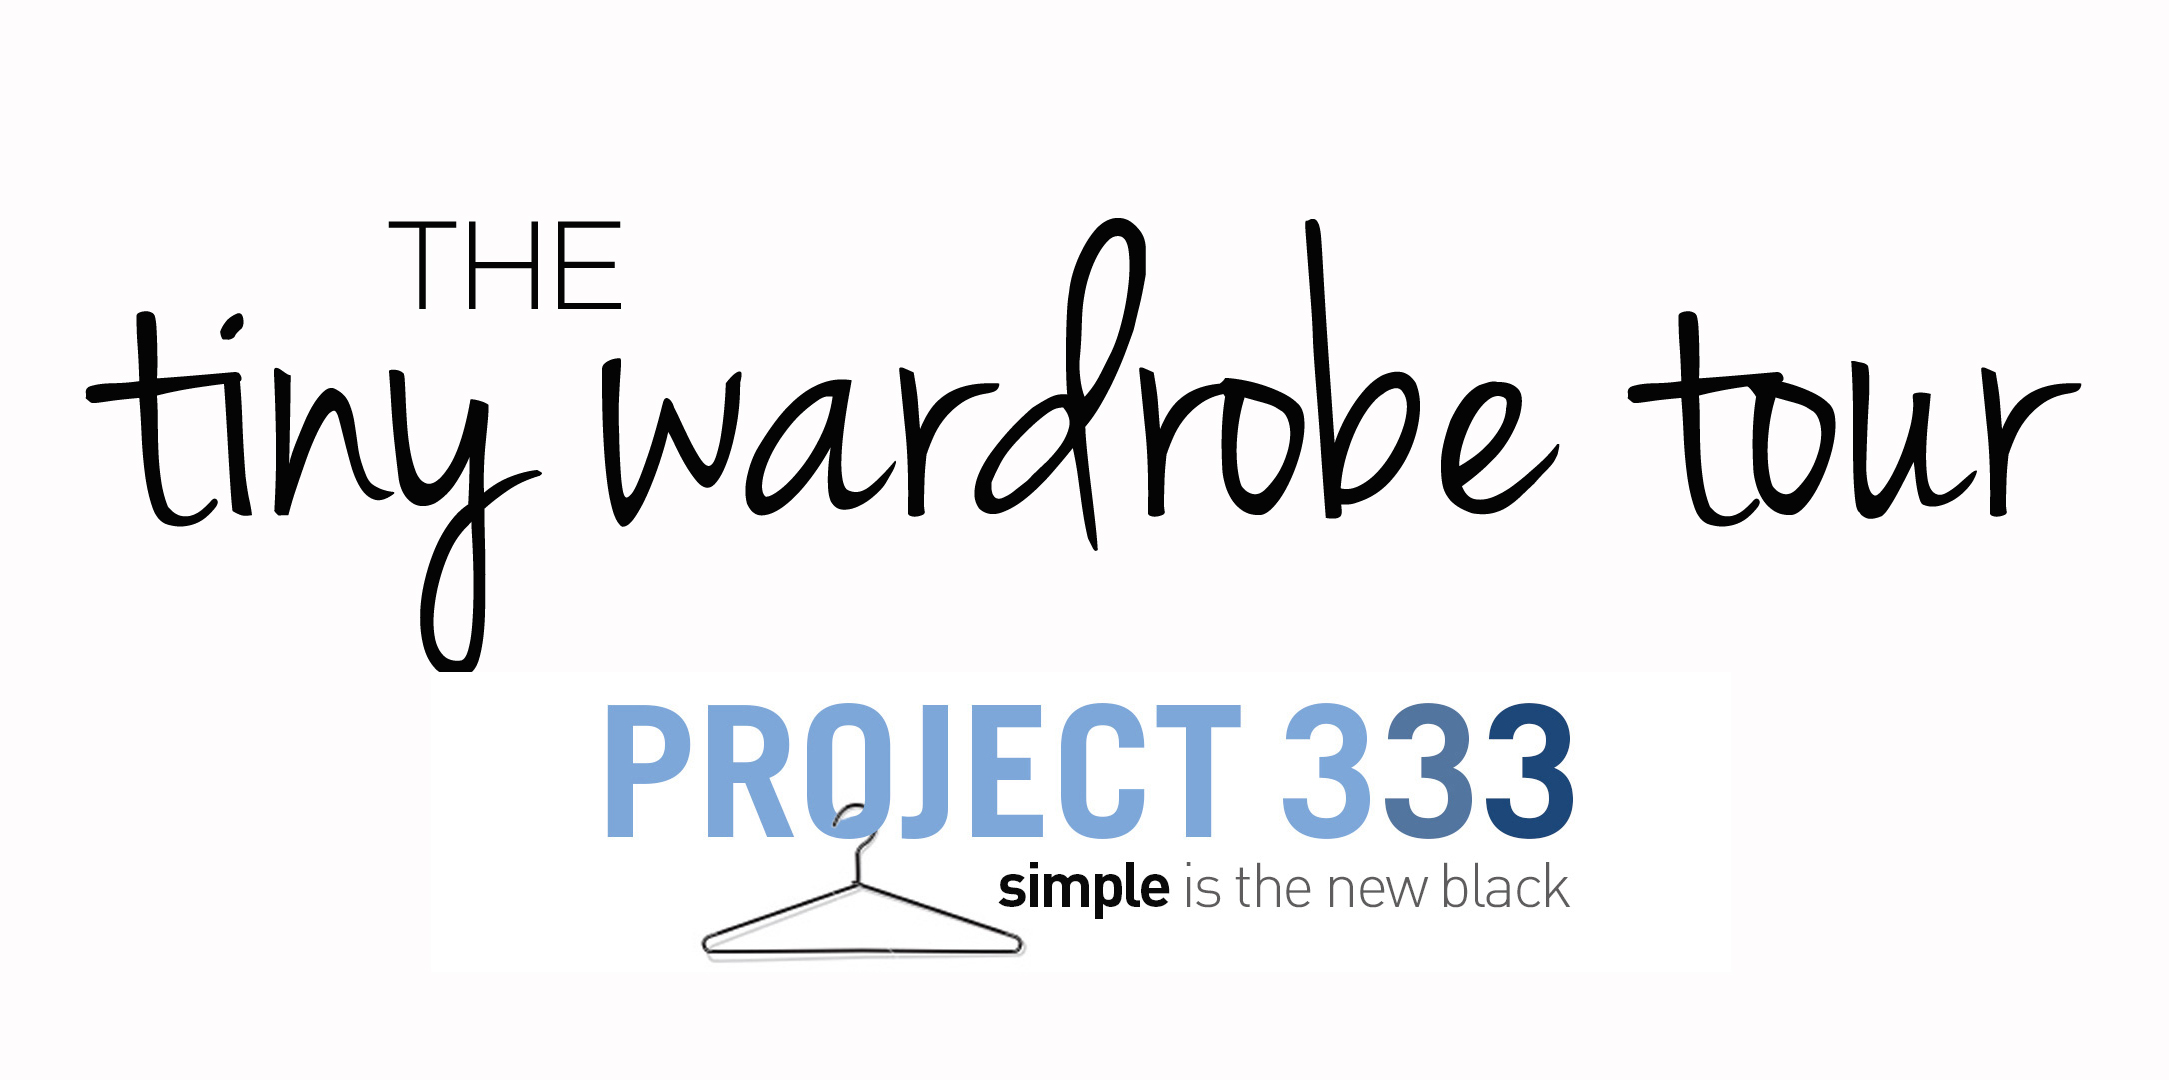 Project 333 The Tiny Wardrobe Tour